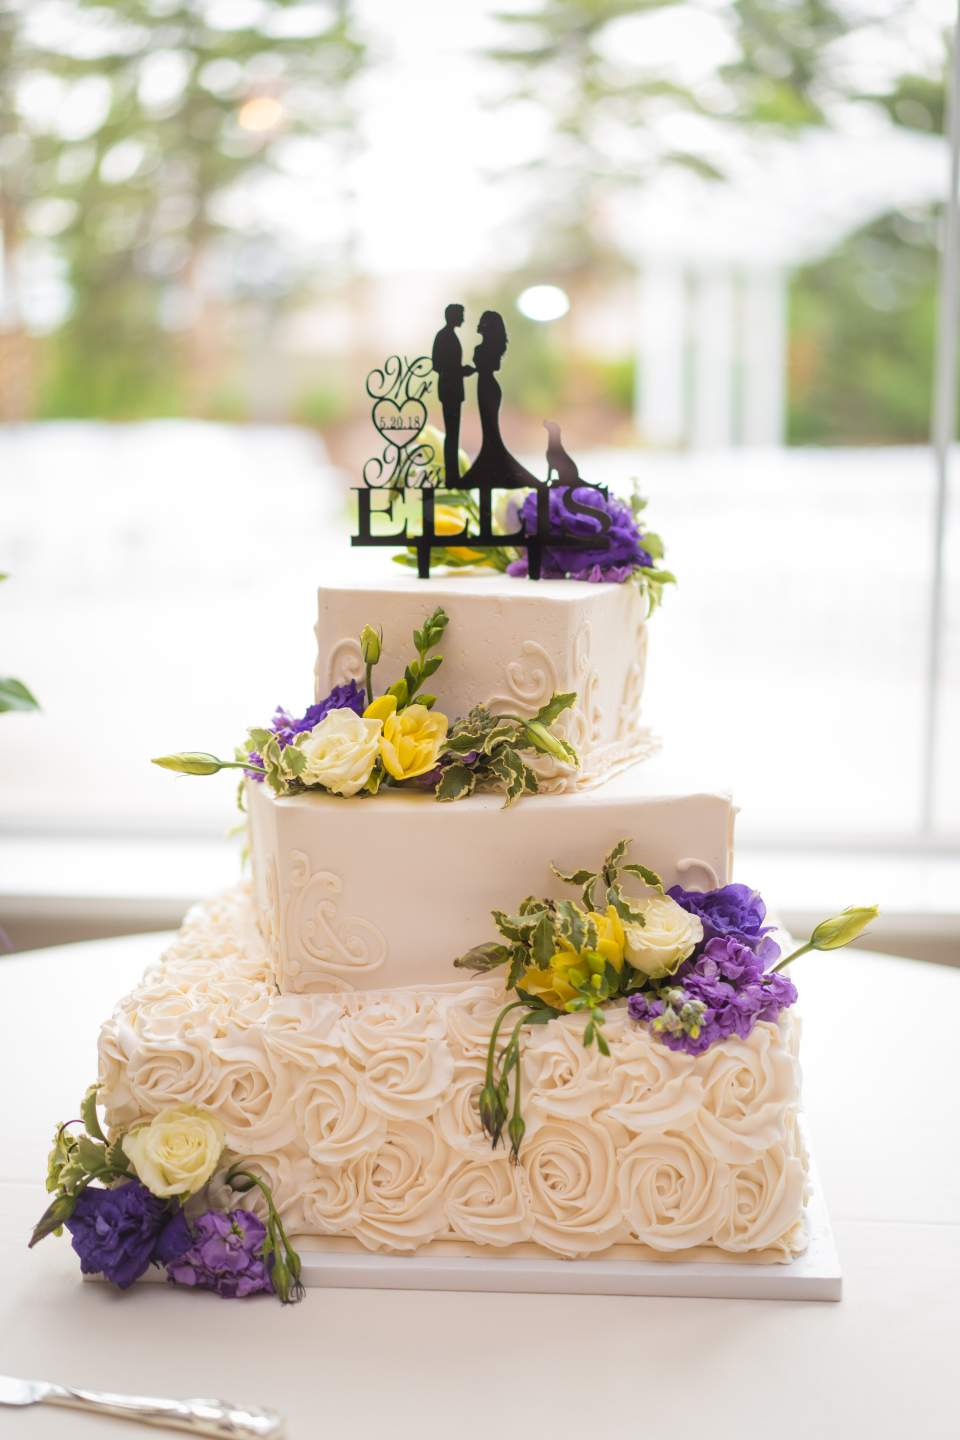 wedding cake with silhouette cake topper